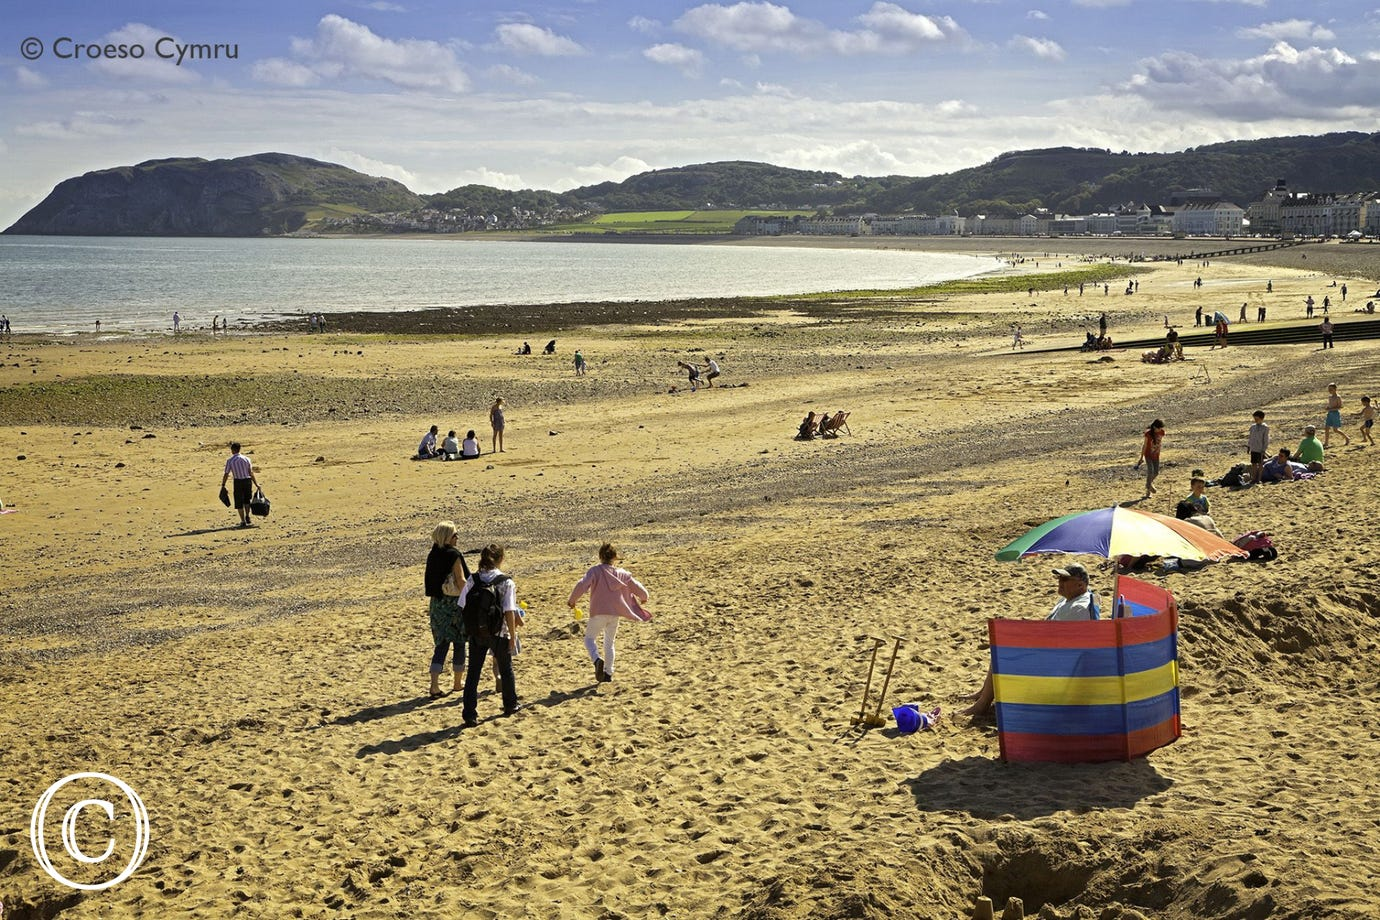 Llandudno (4 miles) offers a great day out with its famous Victorian pier, beach, shops, ski slope, cable cars on the Great Orme and much more